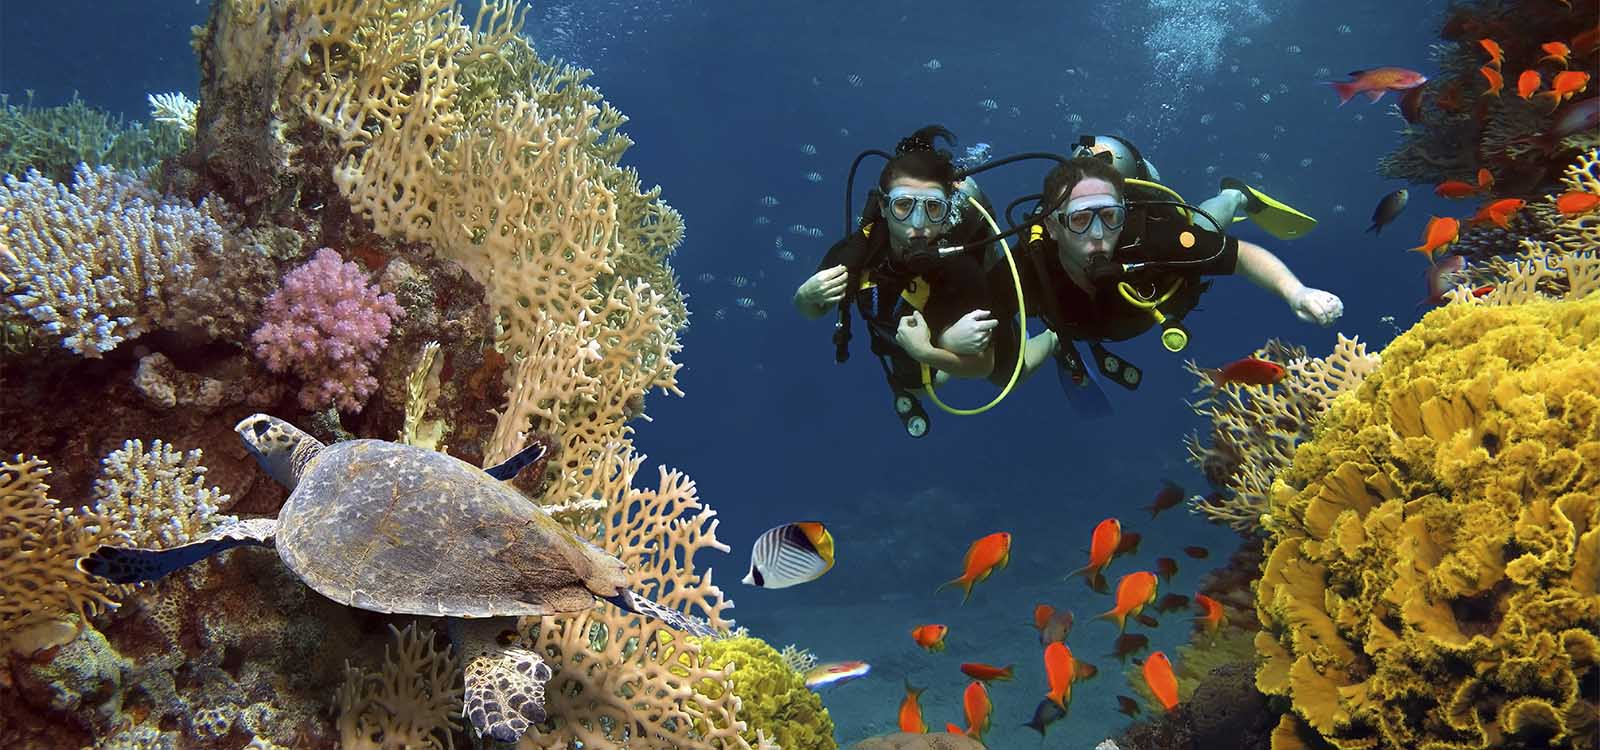 Scuba divers in Dominica Coral Reef.